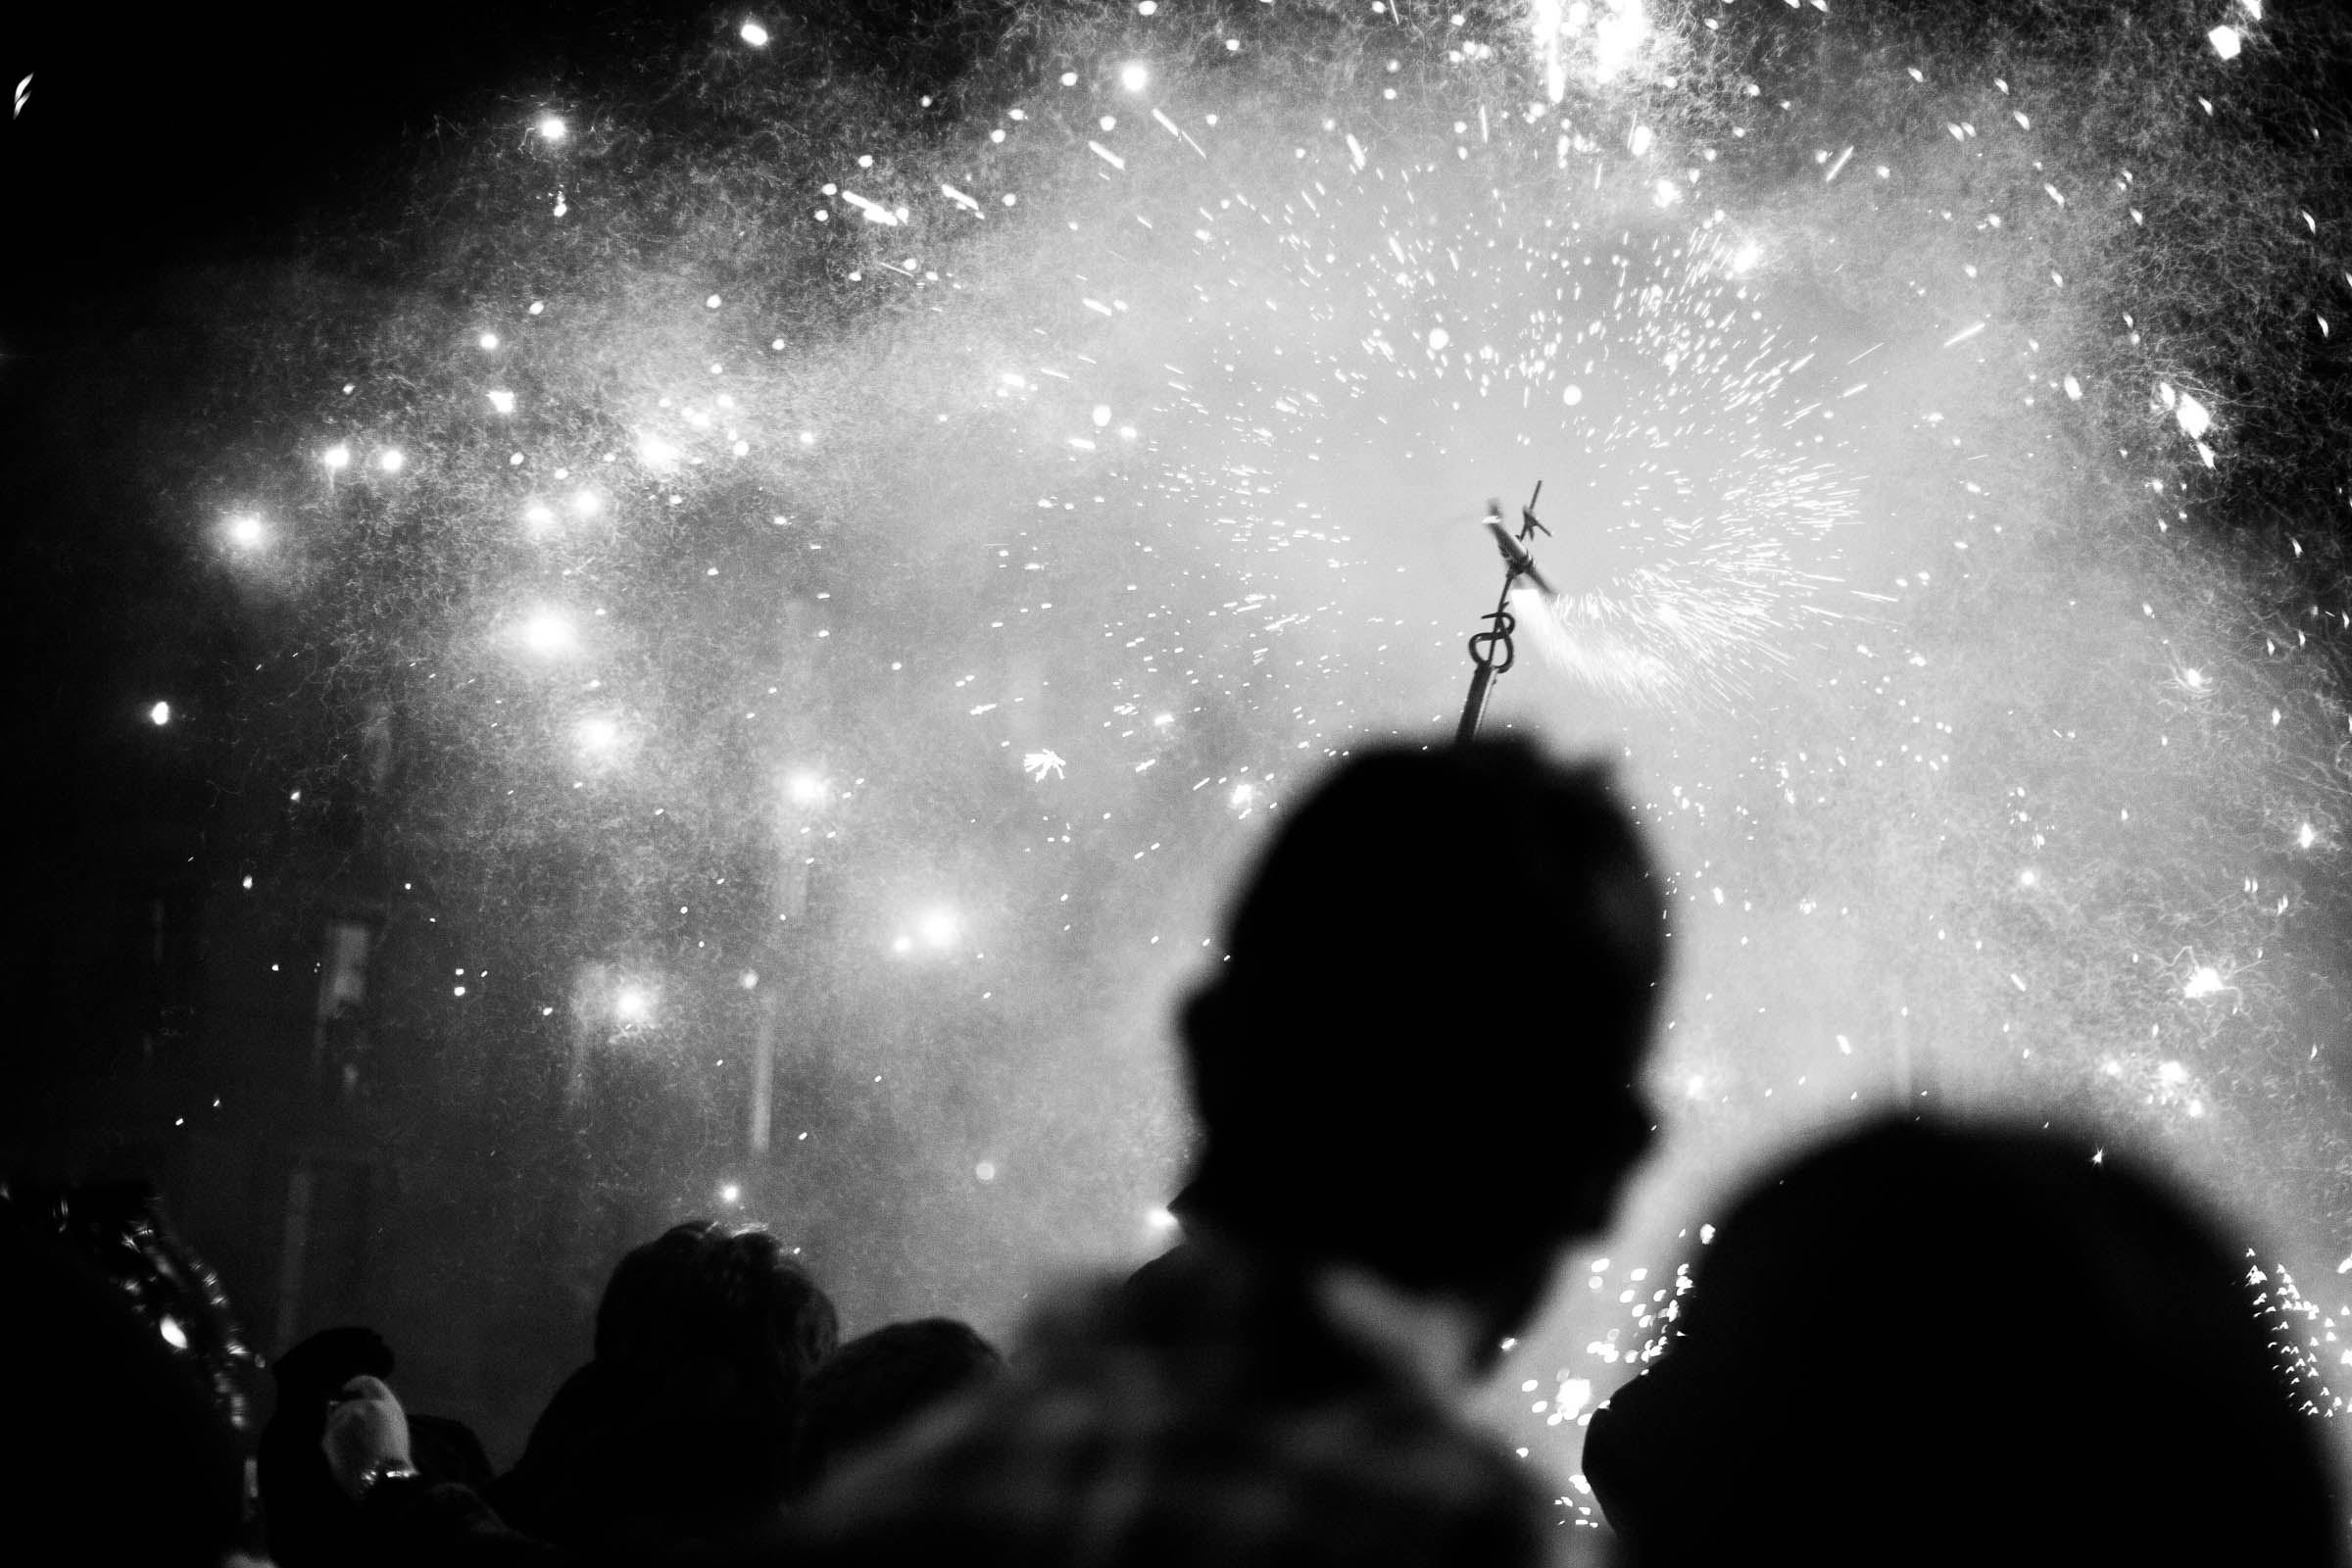 Chacon+Images_Correfocs_Web-5.jpg